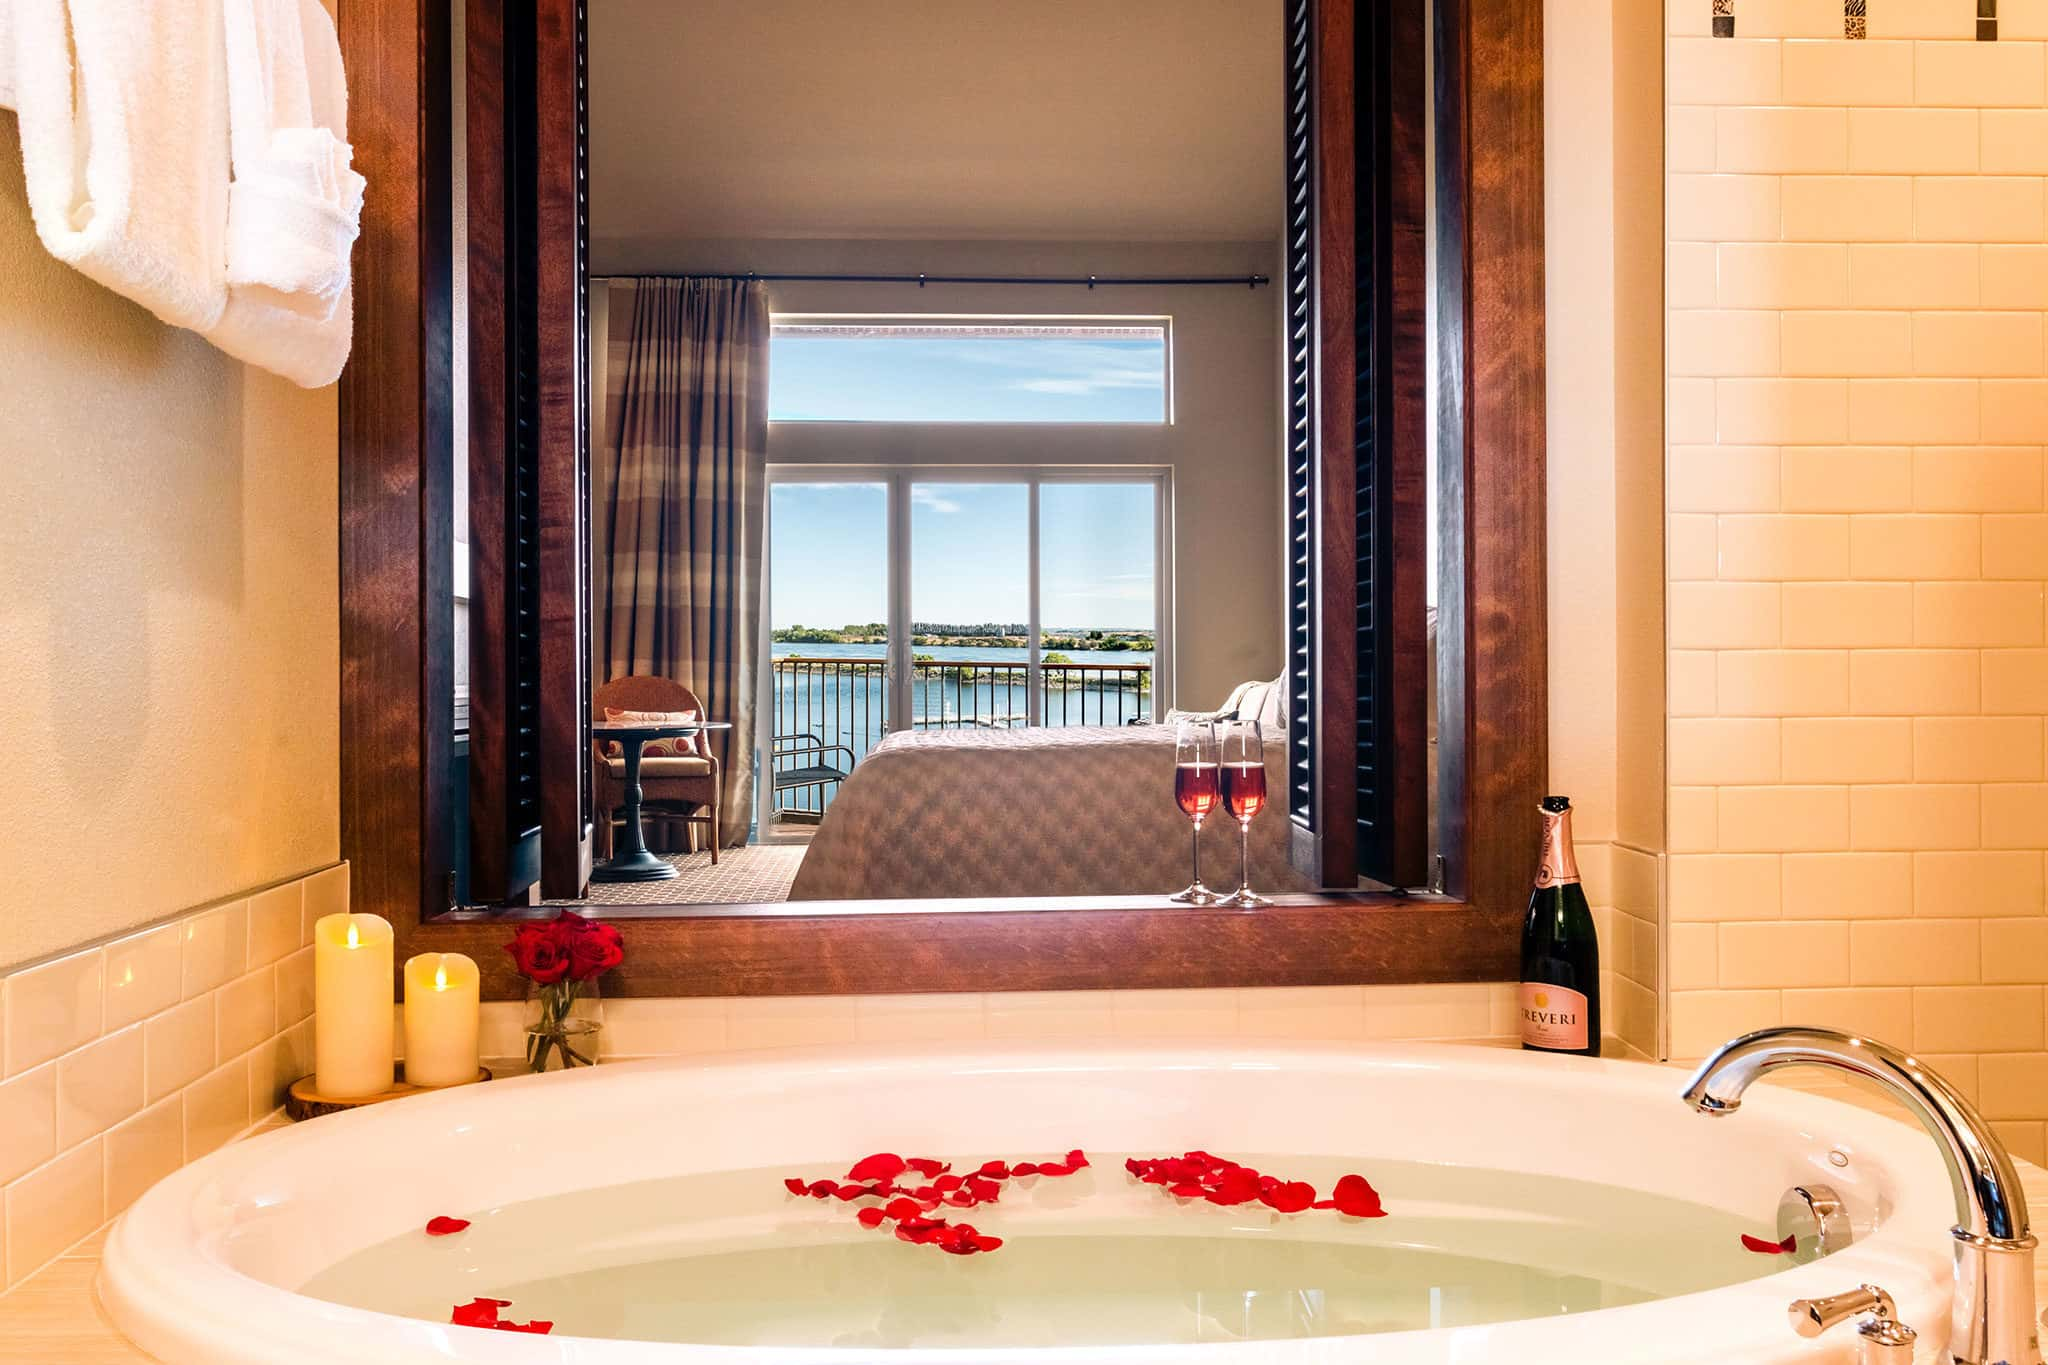 Plan your romantic vacation in the Tri-Cities, WA